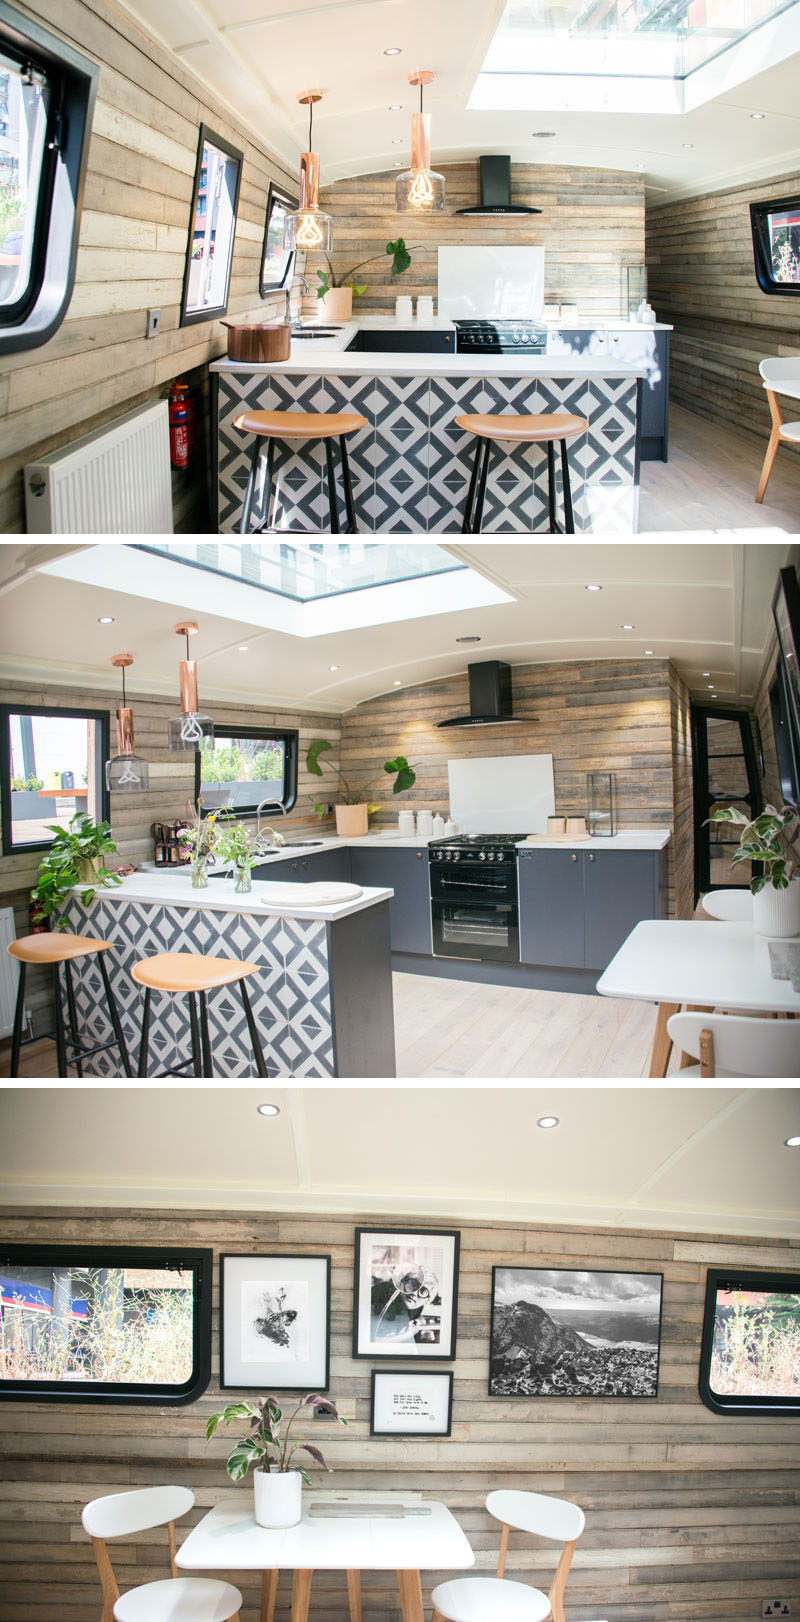 5b5a955887386london-boathouse-design-kitchen-250718-1222-06-800x1622